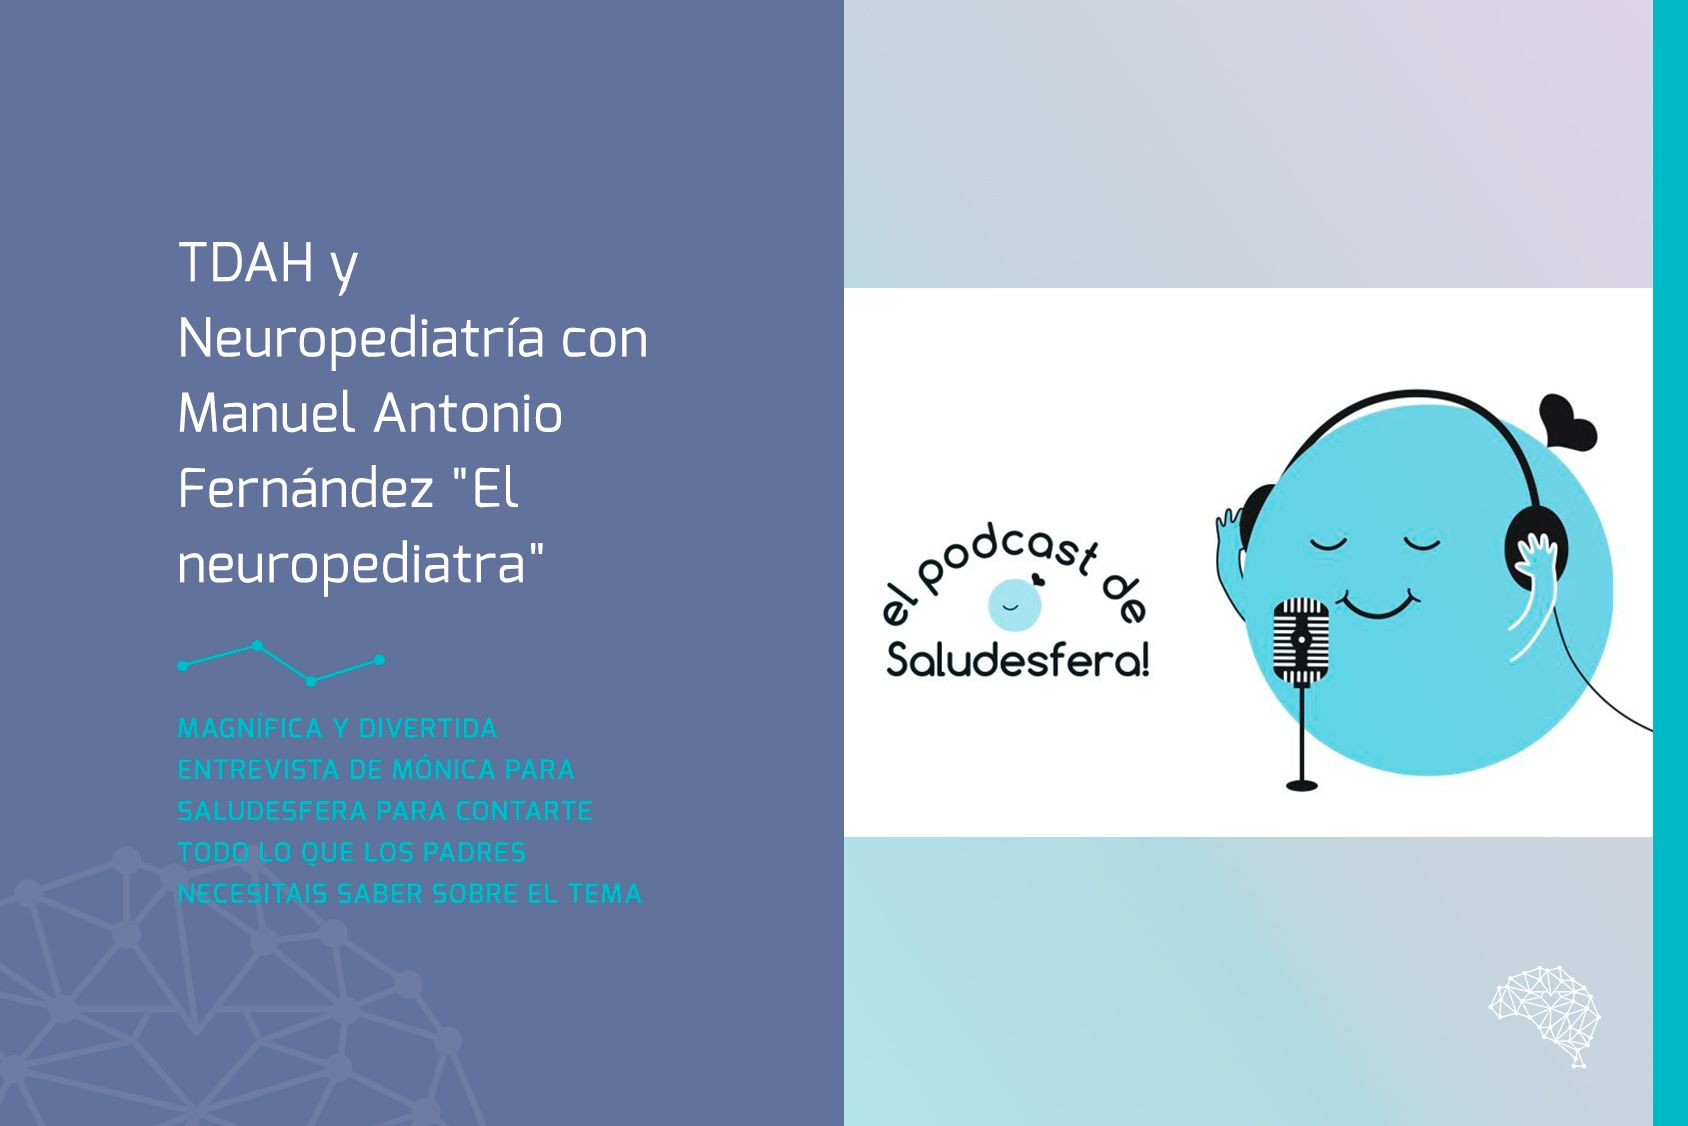 TDAH y Neuropediatría